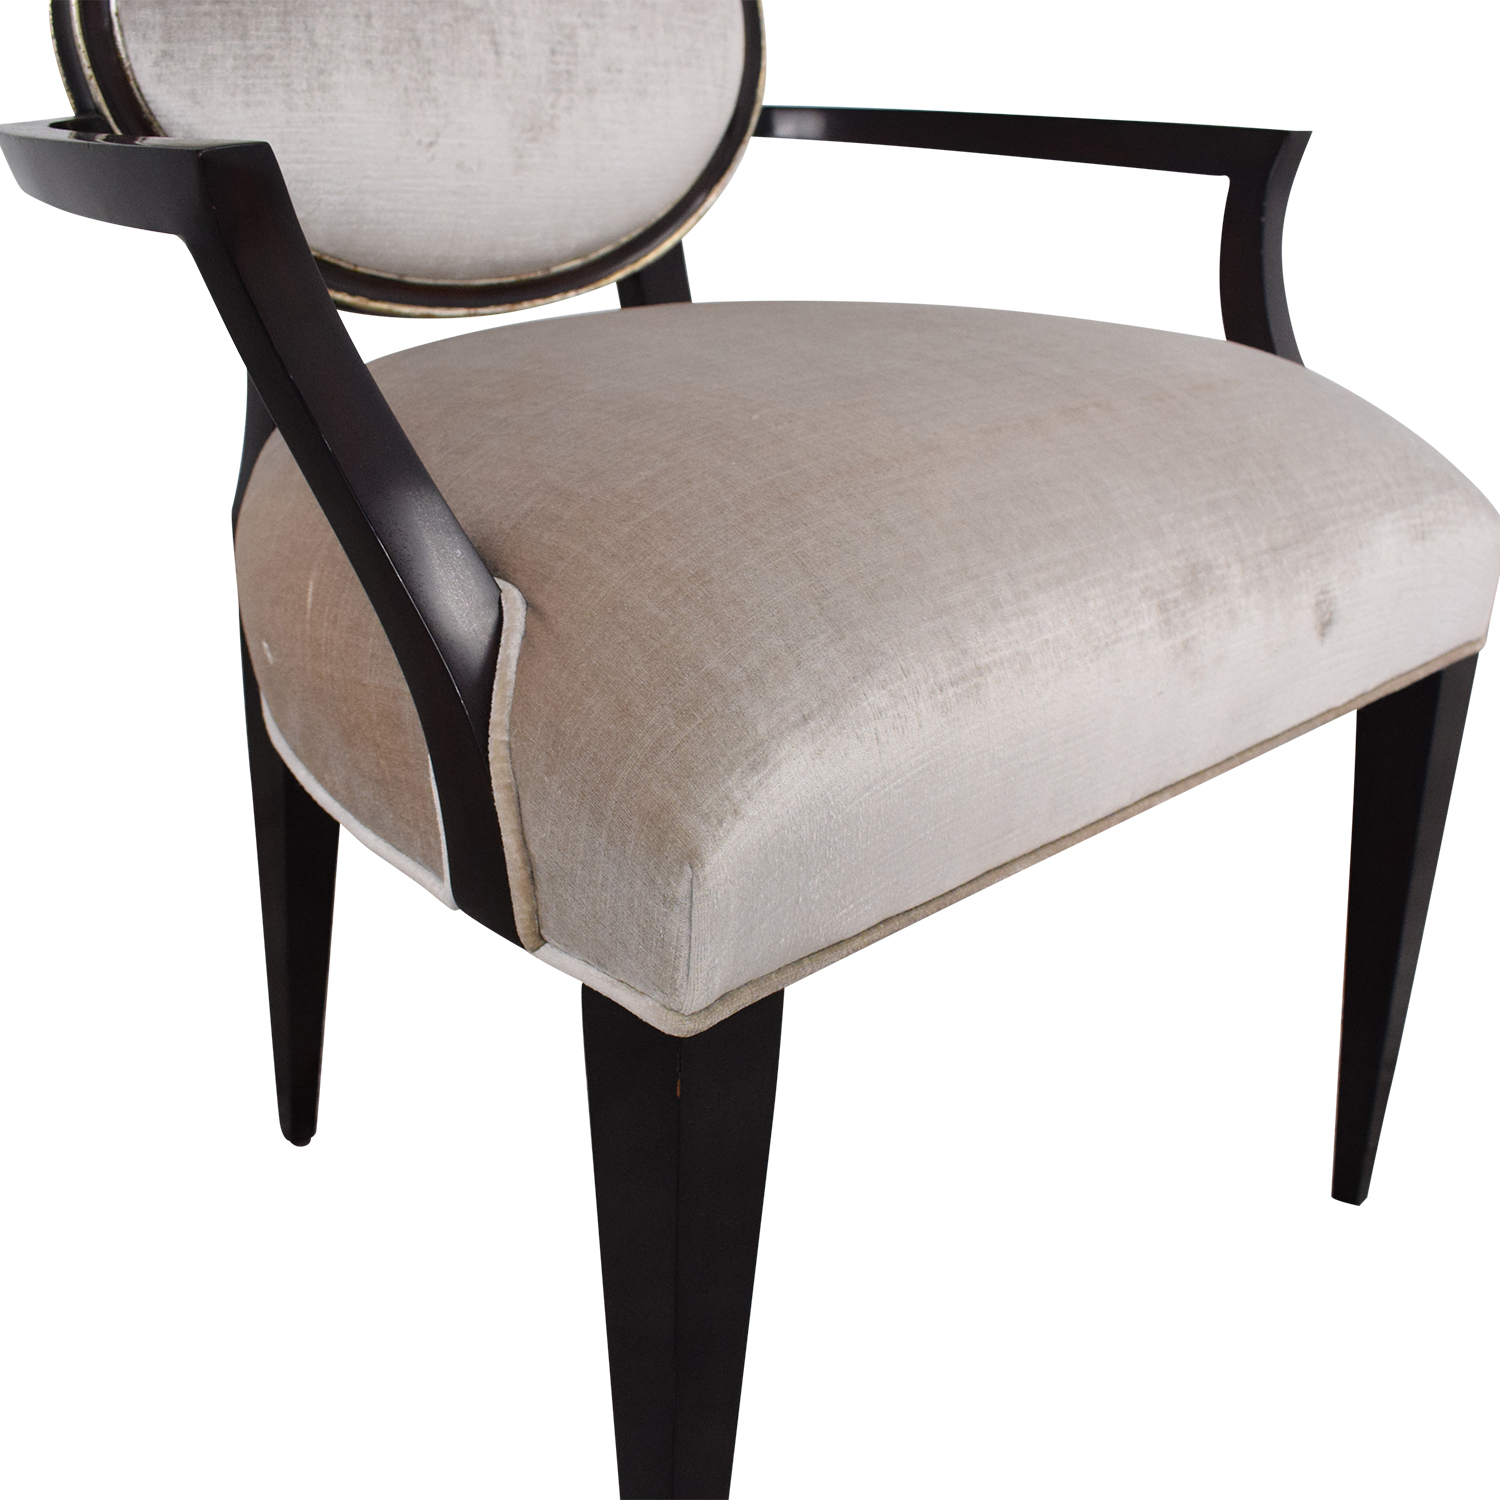 Christopher Guy Figure 8 Chair sale